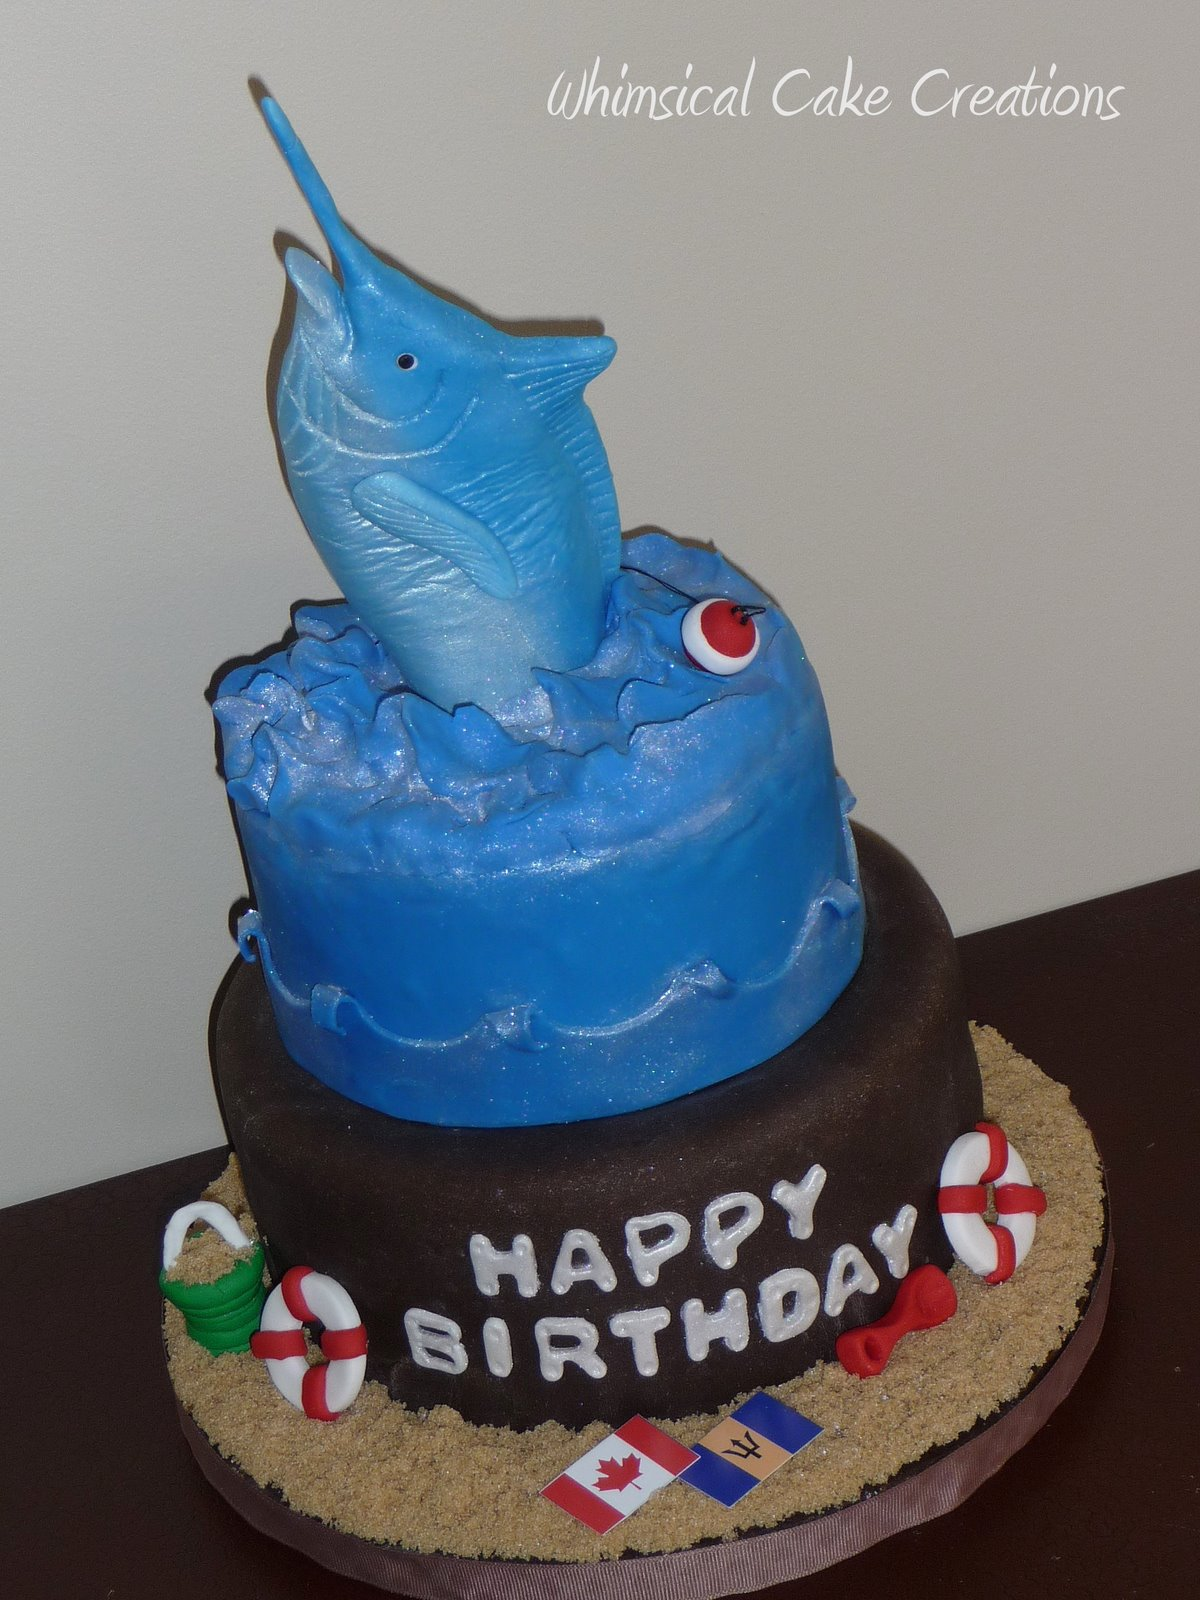 WhimsicalCreationsca Blue Marlin Cake